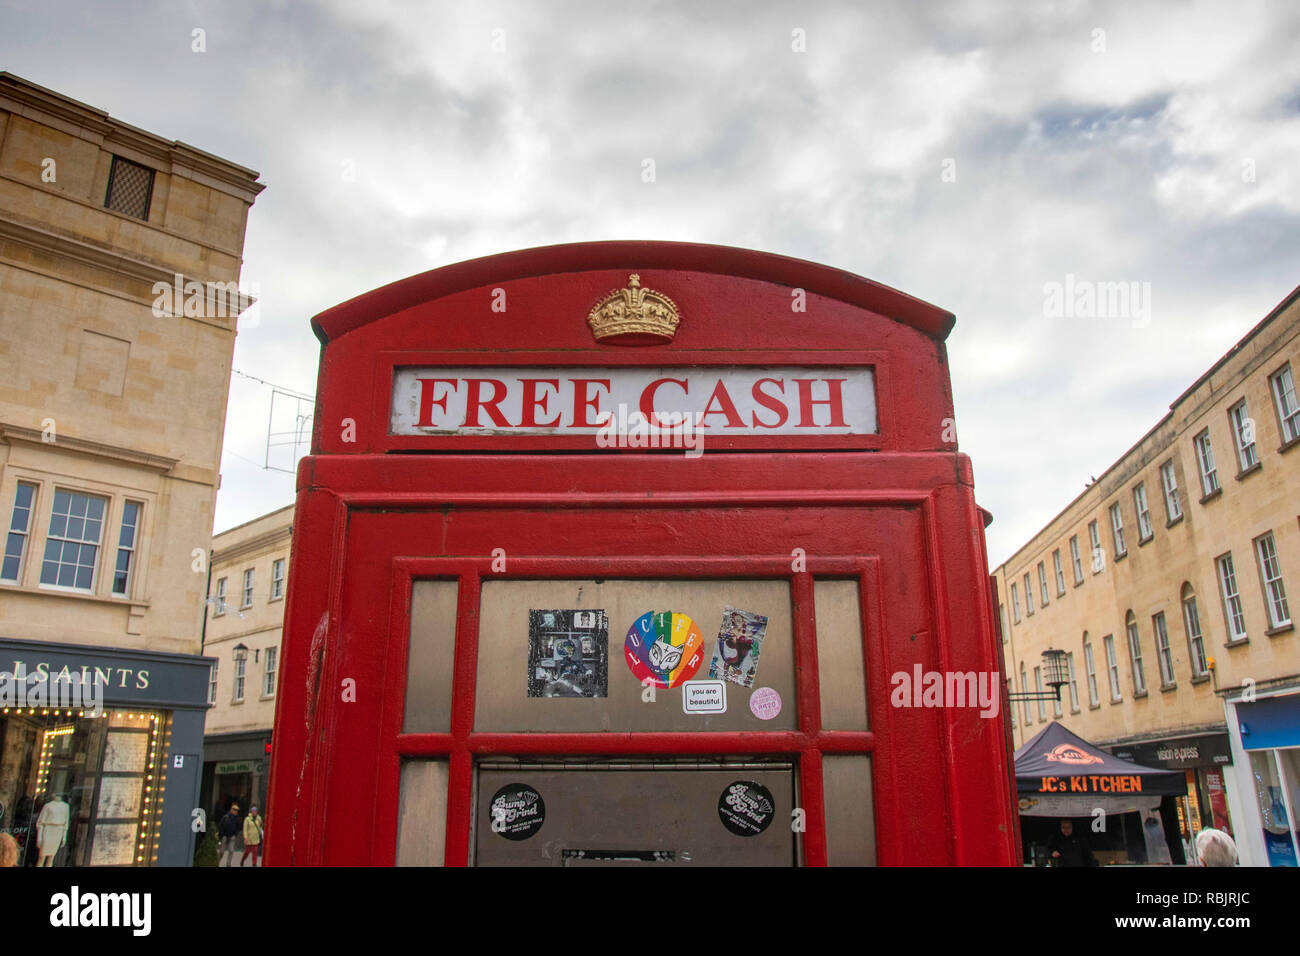 Old red telephone box now used as a cash machine in Bath, England, UK - Stock Image